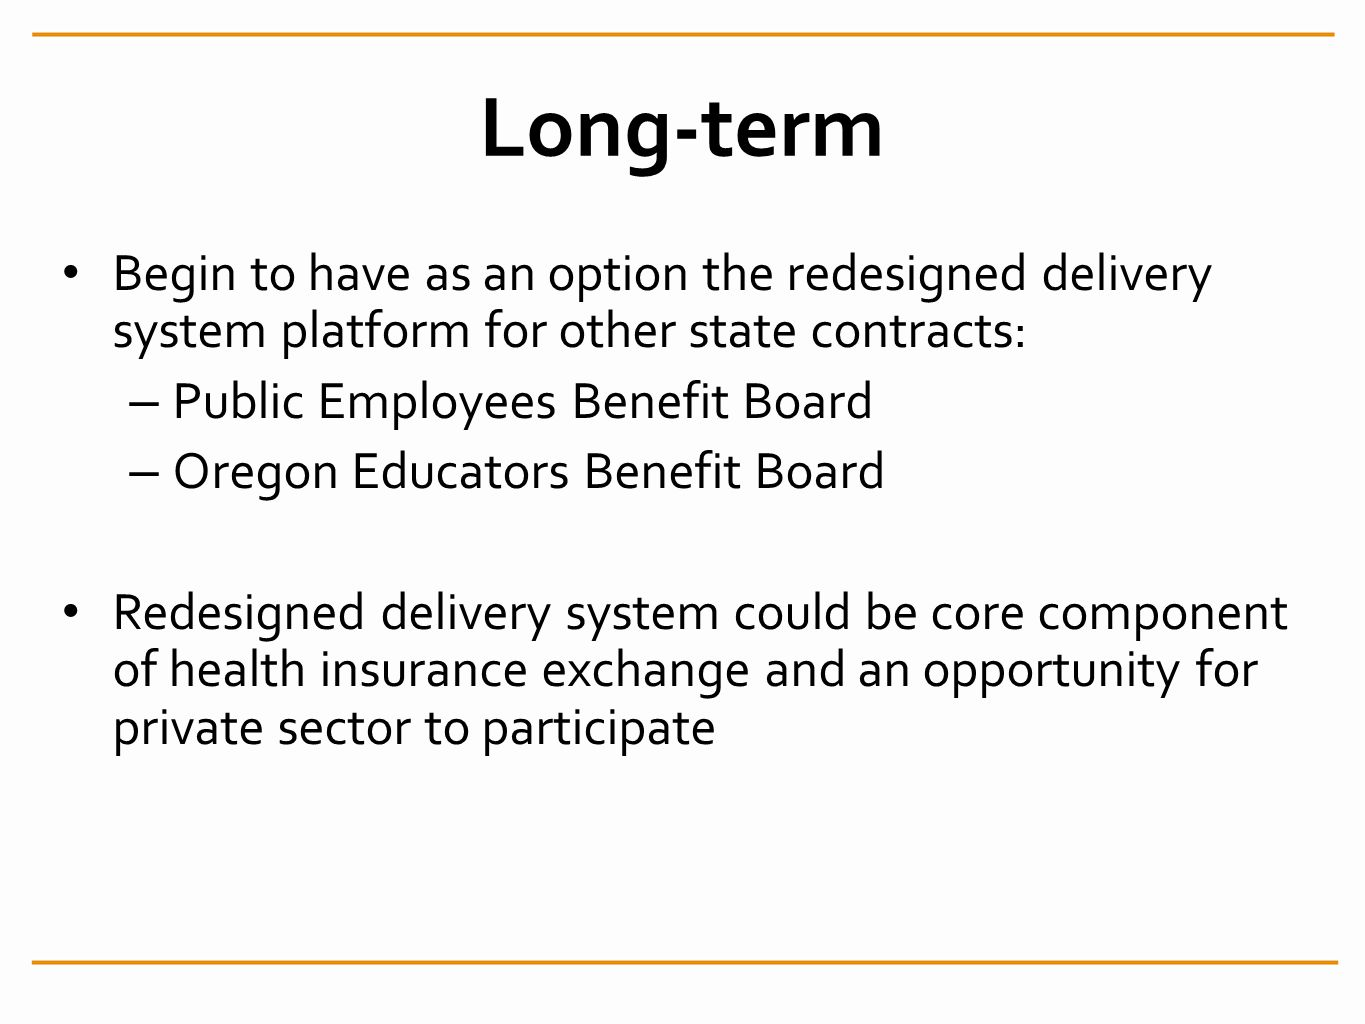 Long-term Begin to have as an option the redesigned delivery system platform for other state contracts: – Public Employees Benefit Board – Oregon Educators Benefit Board Redesigned delivery system could be core component of health insurance exchange and an opportunity for private sector to participate